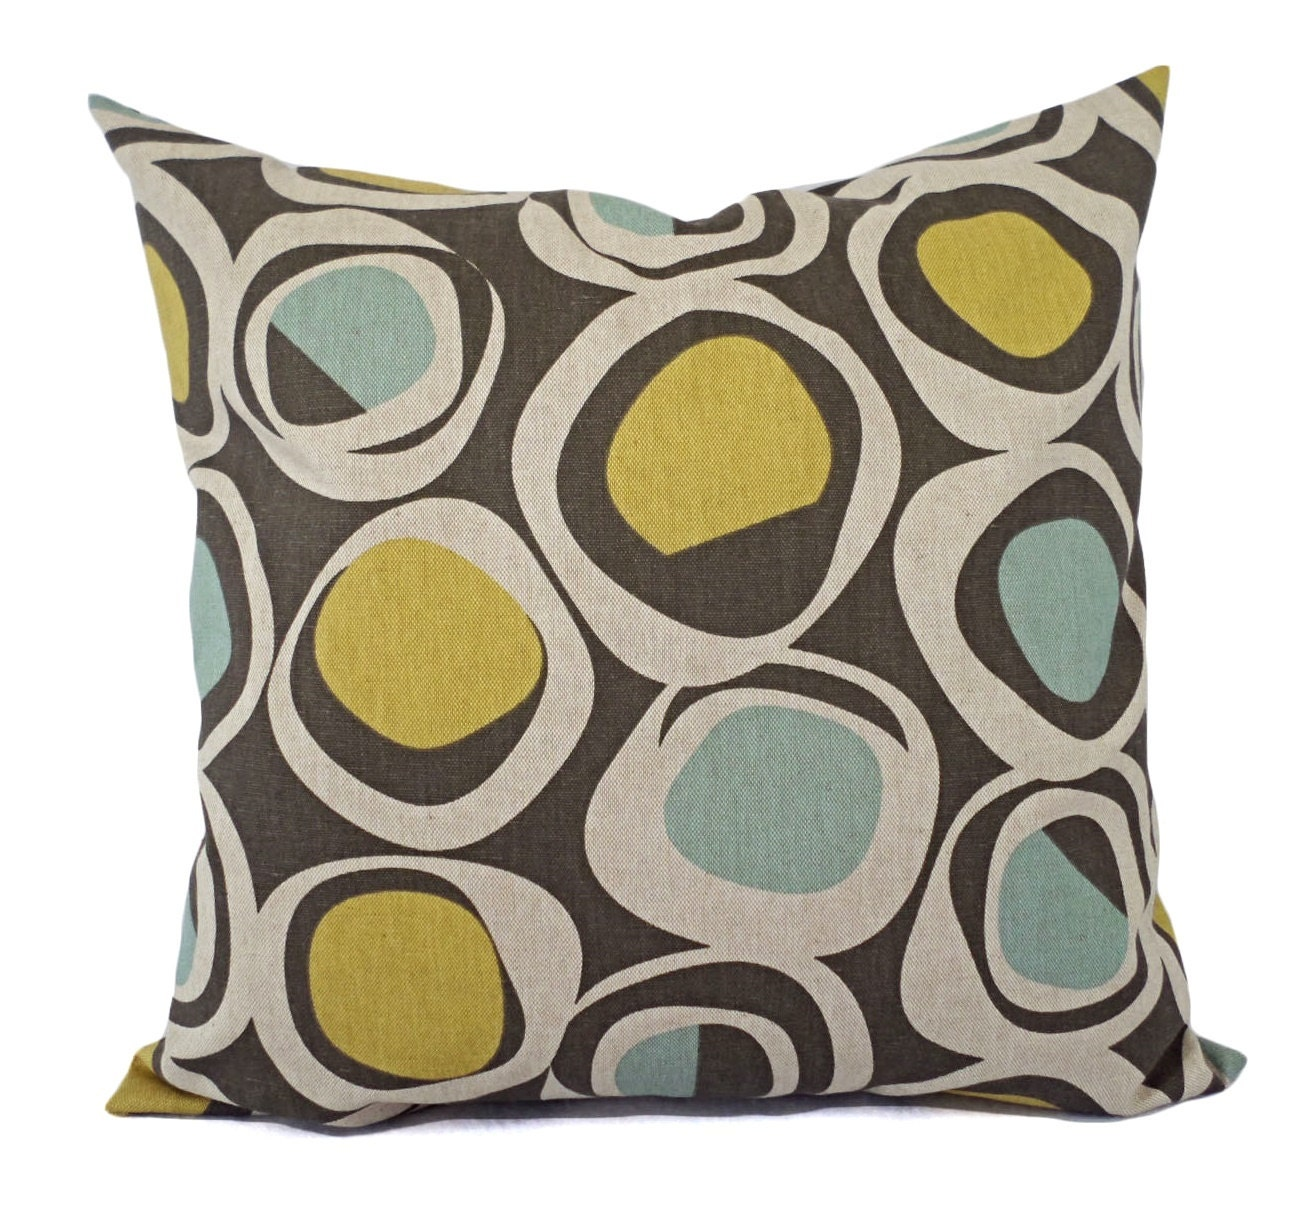 Yellow Brown Throw Pillows : Brown Yellow and Blue Decorative Pillow Covers Two Geometric